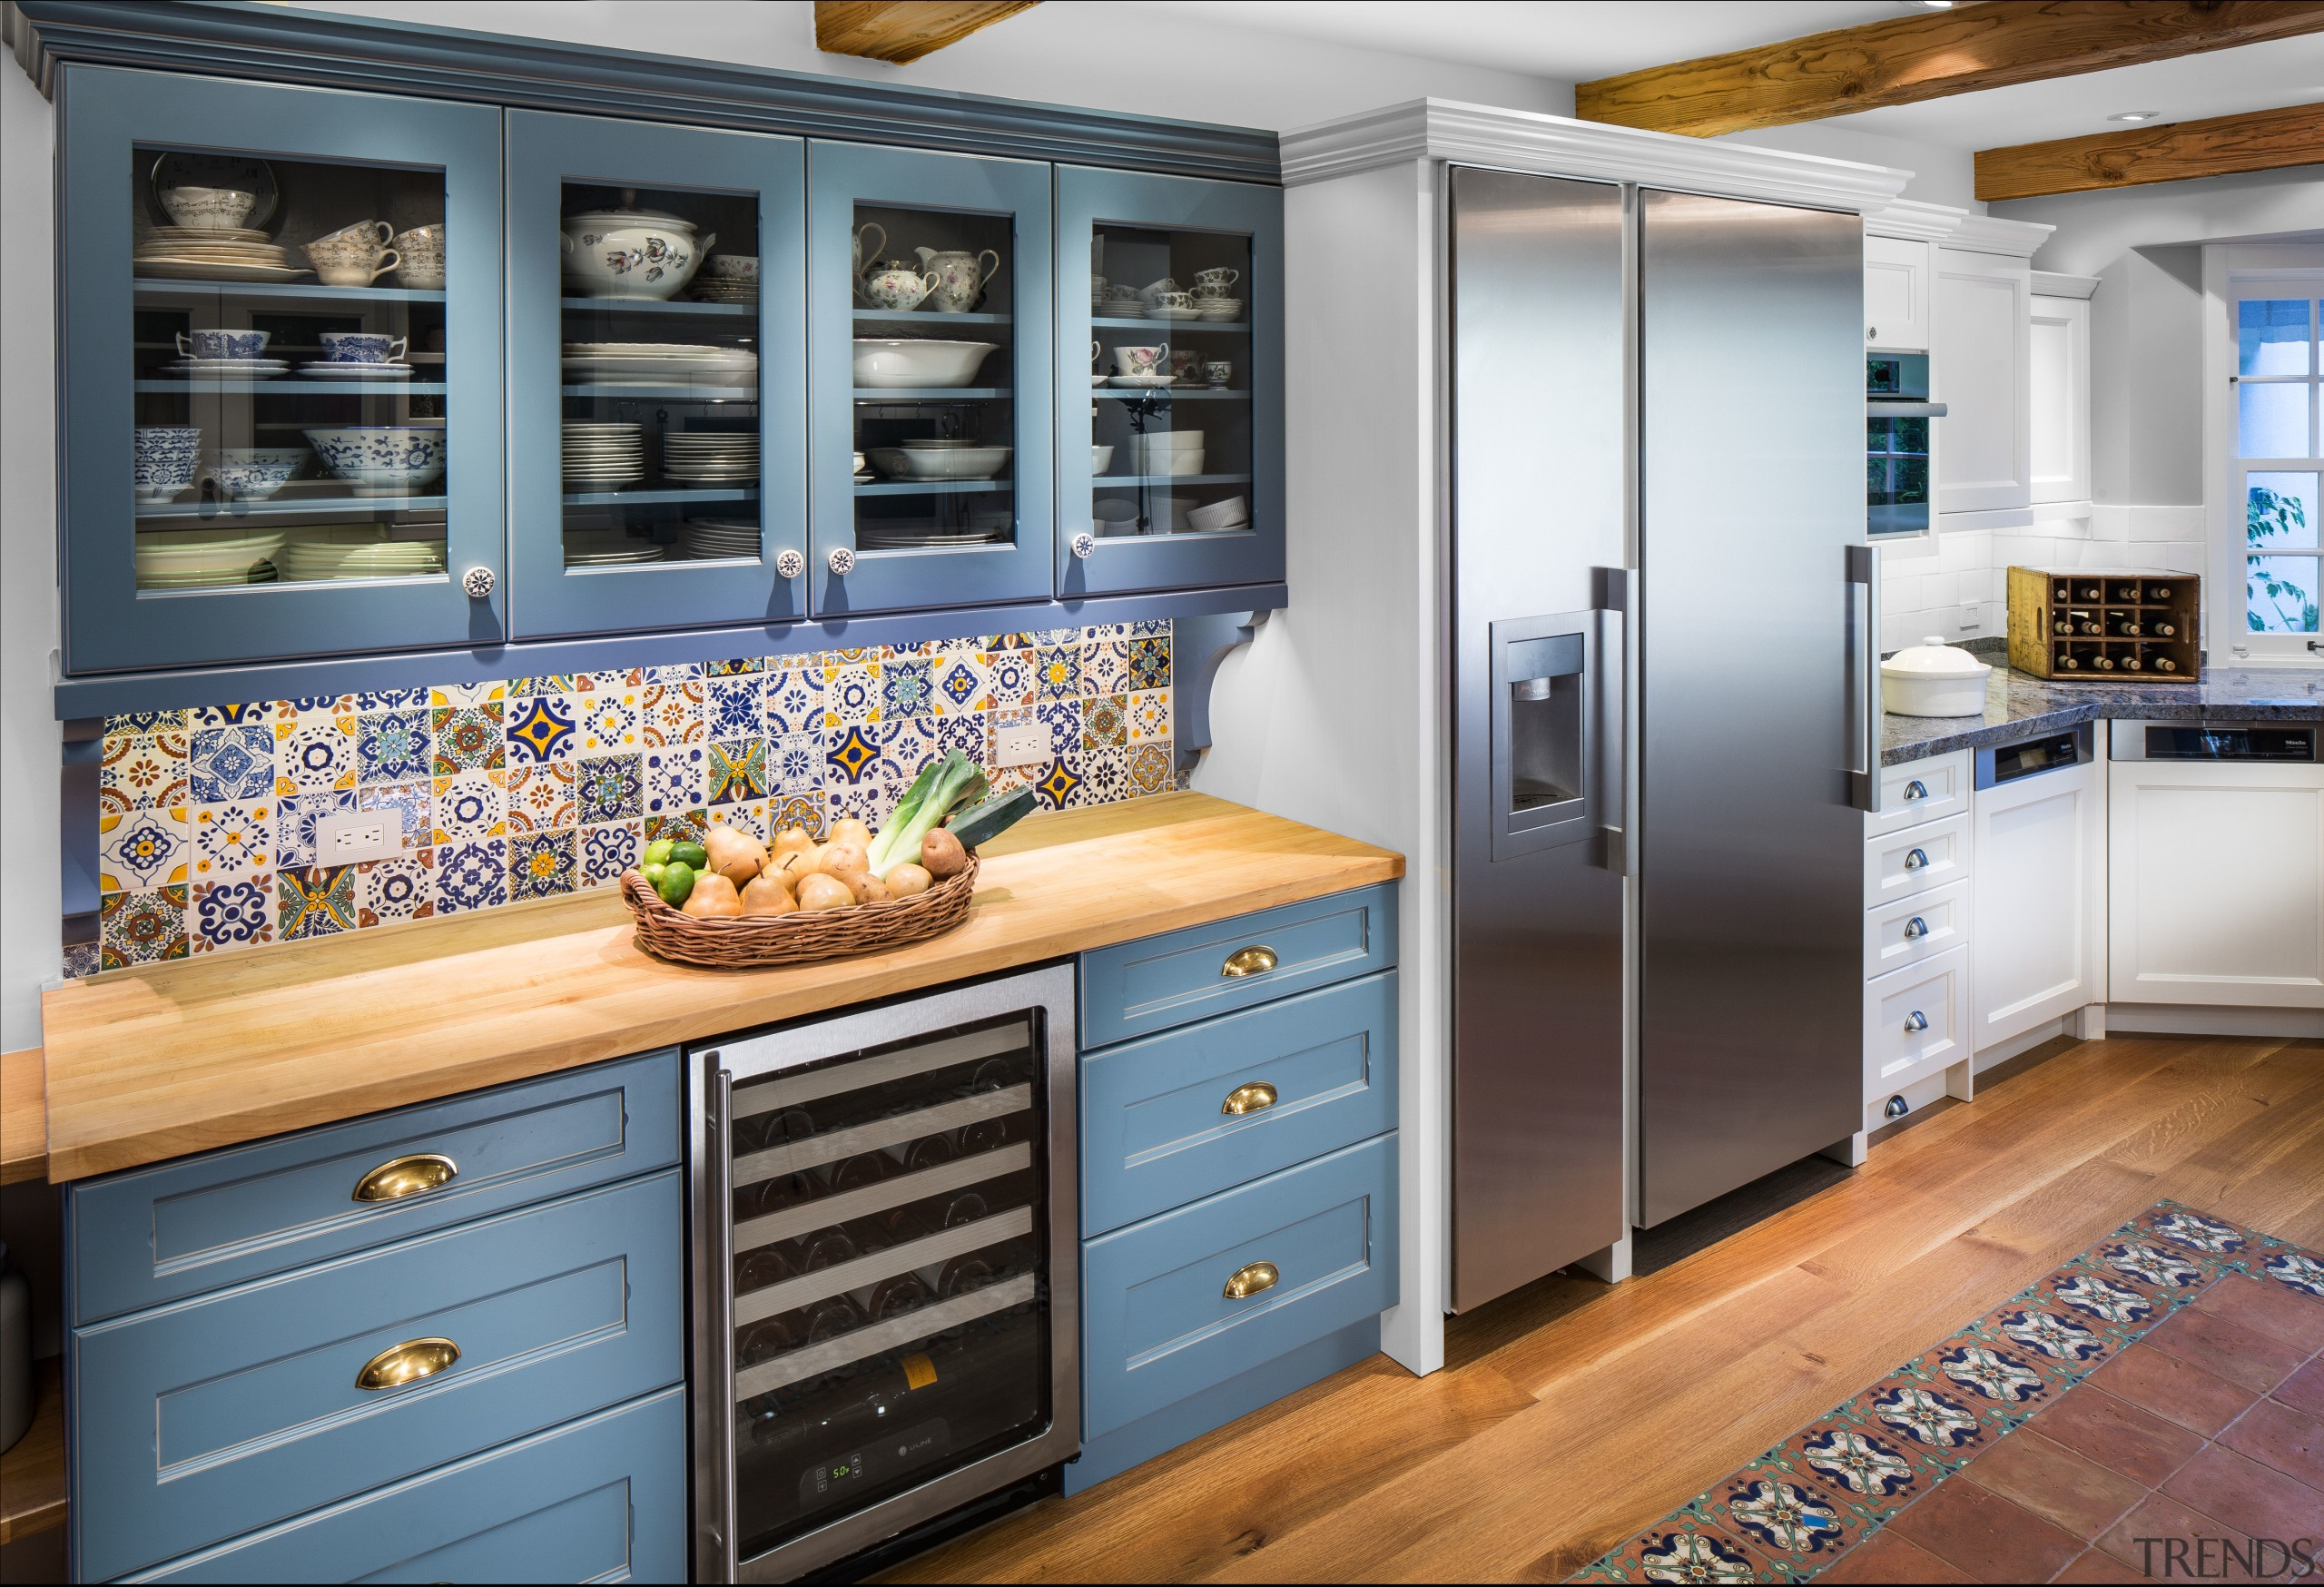 A new blue hutch in this remodeled kitchen cabinetry, countertop, cuisine classique, home appliance, interior design, kitchen, refrigerator, room, gray